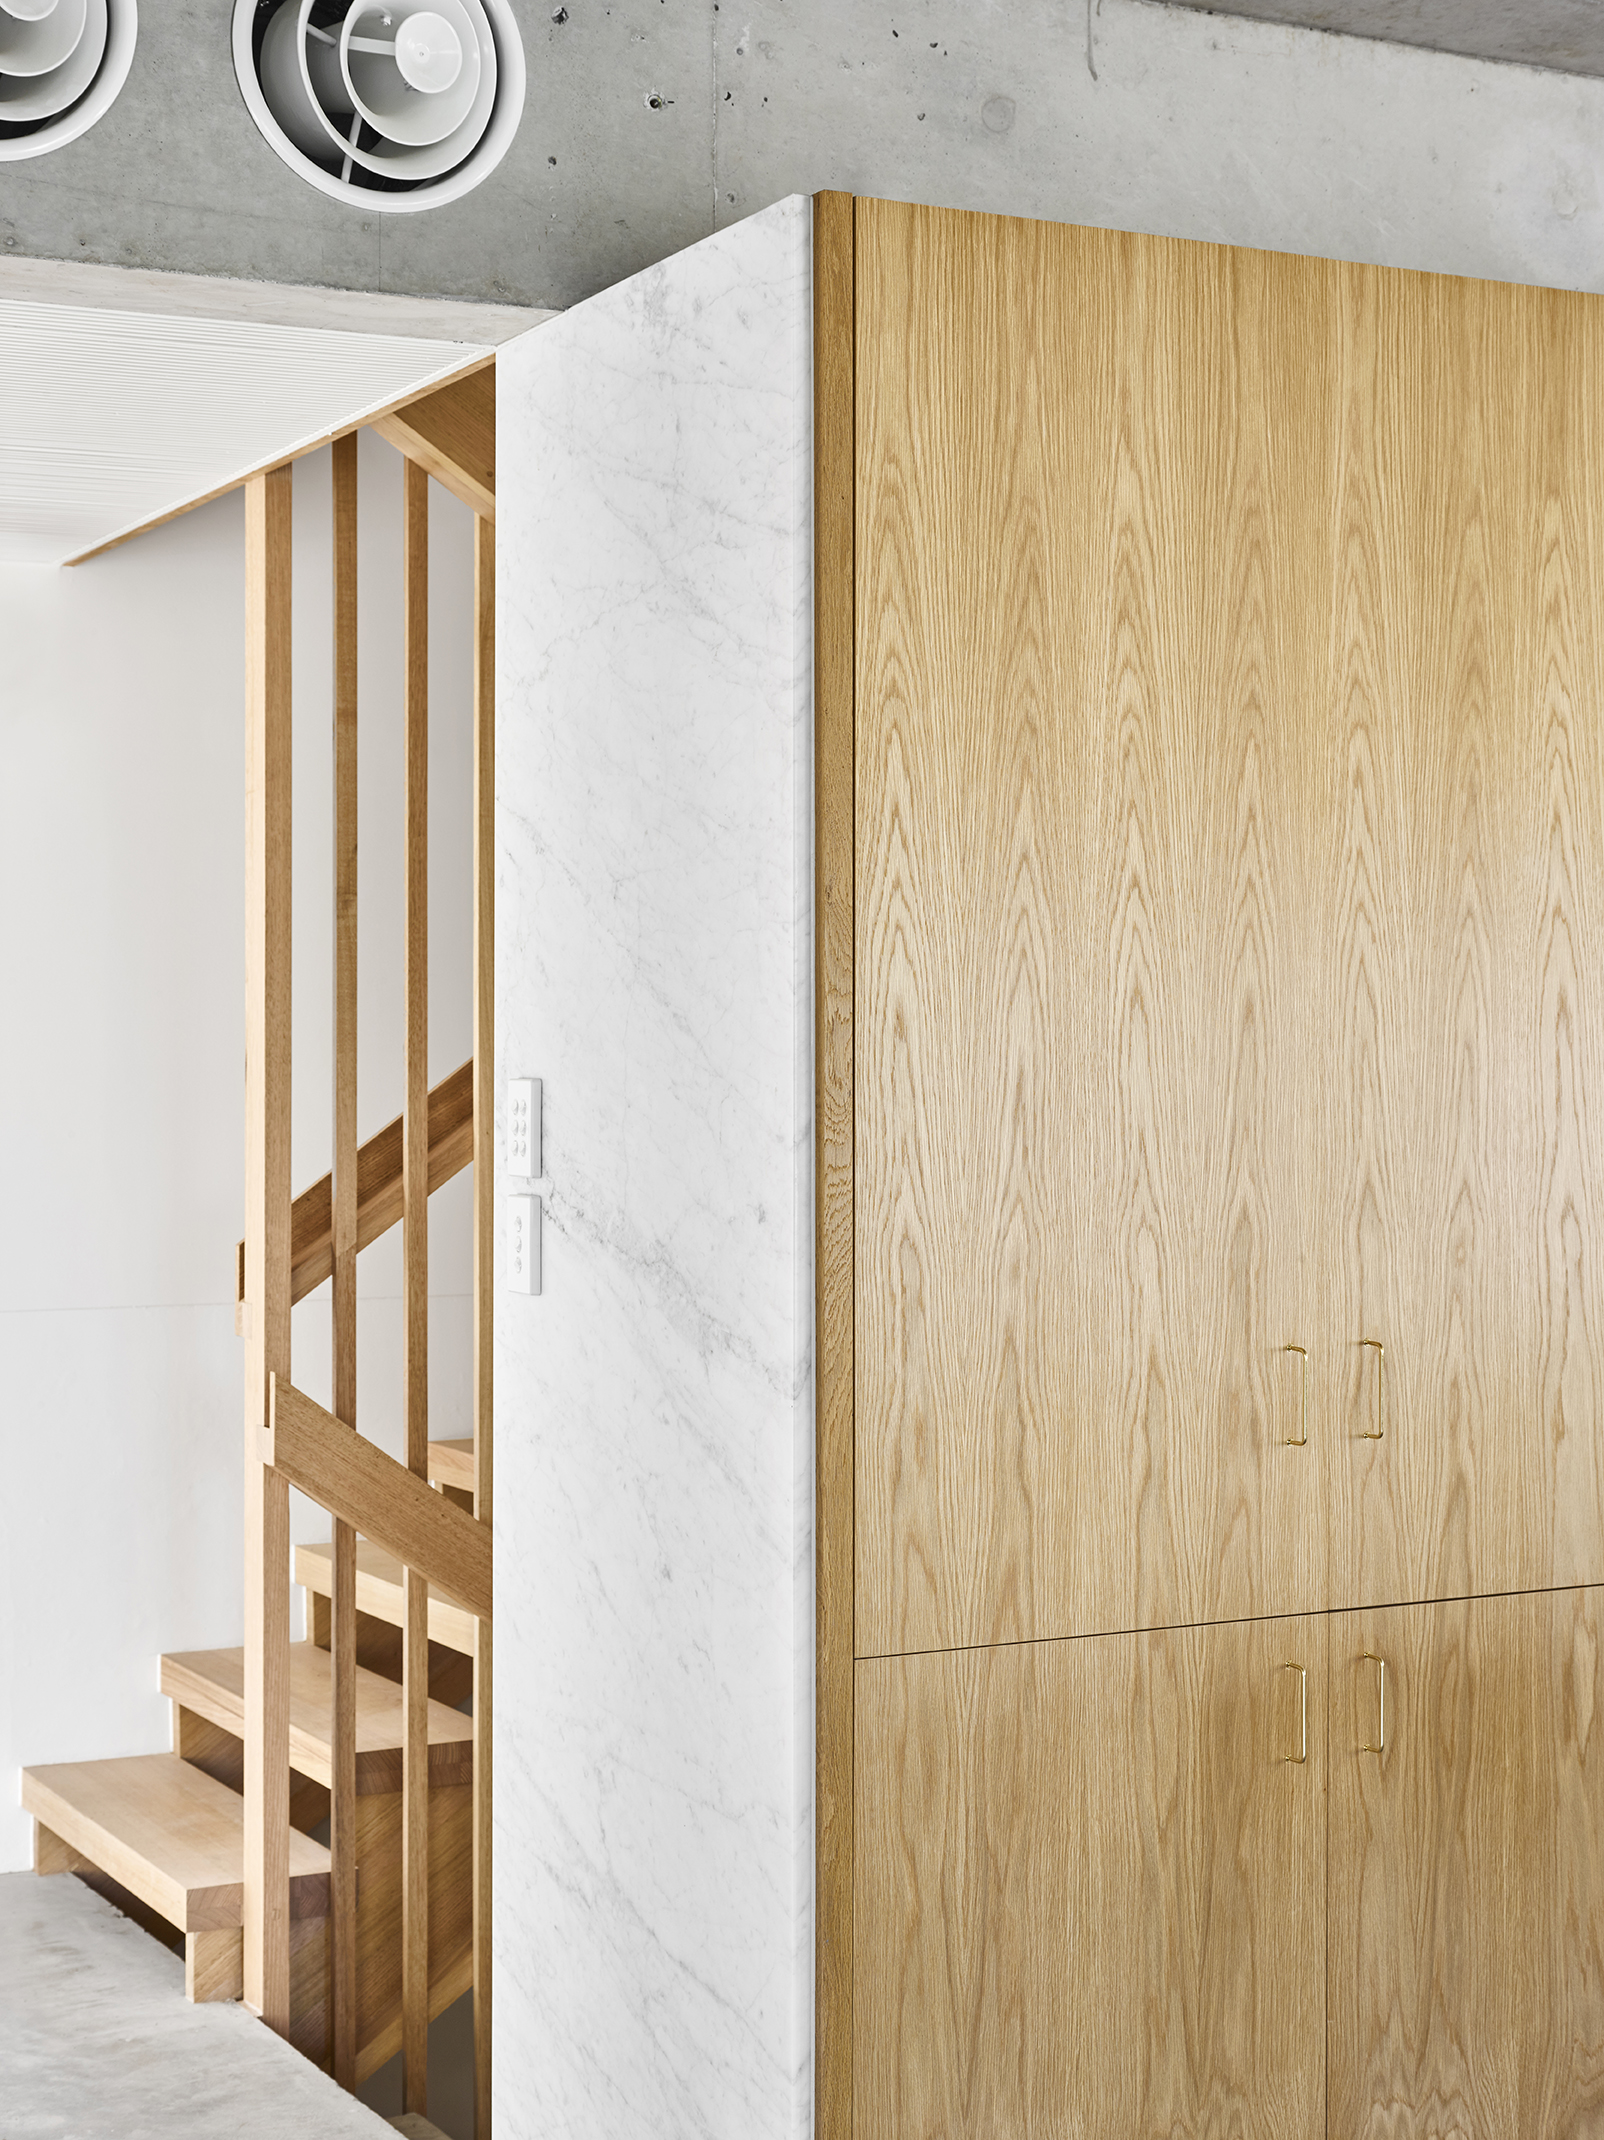 O+Lineburg___Goldieslie_Rd_House60680©To